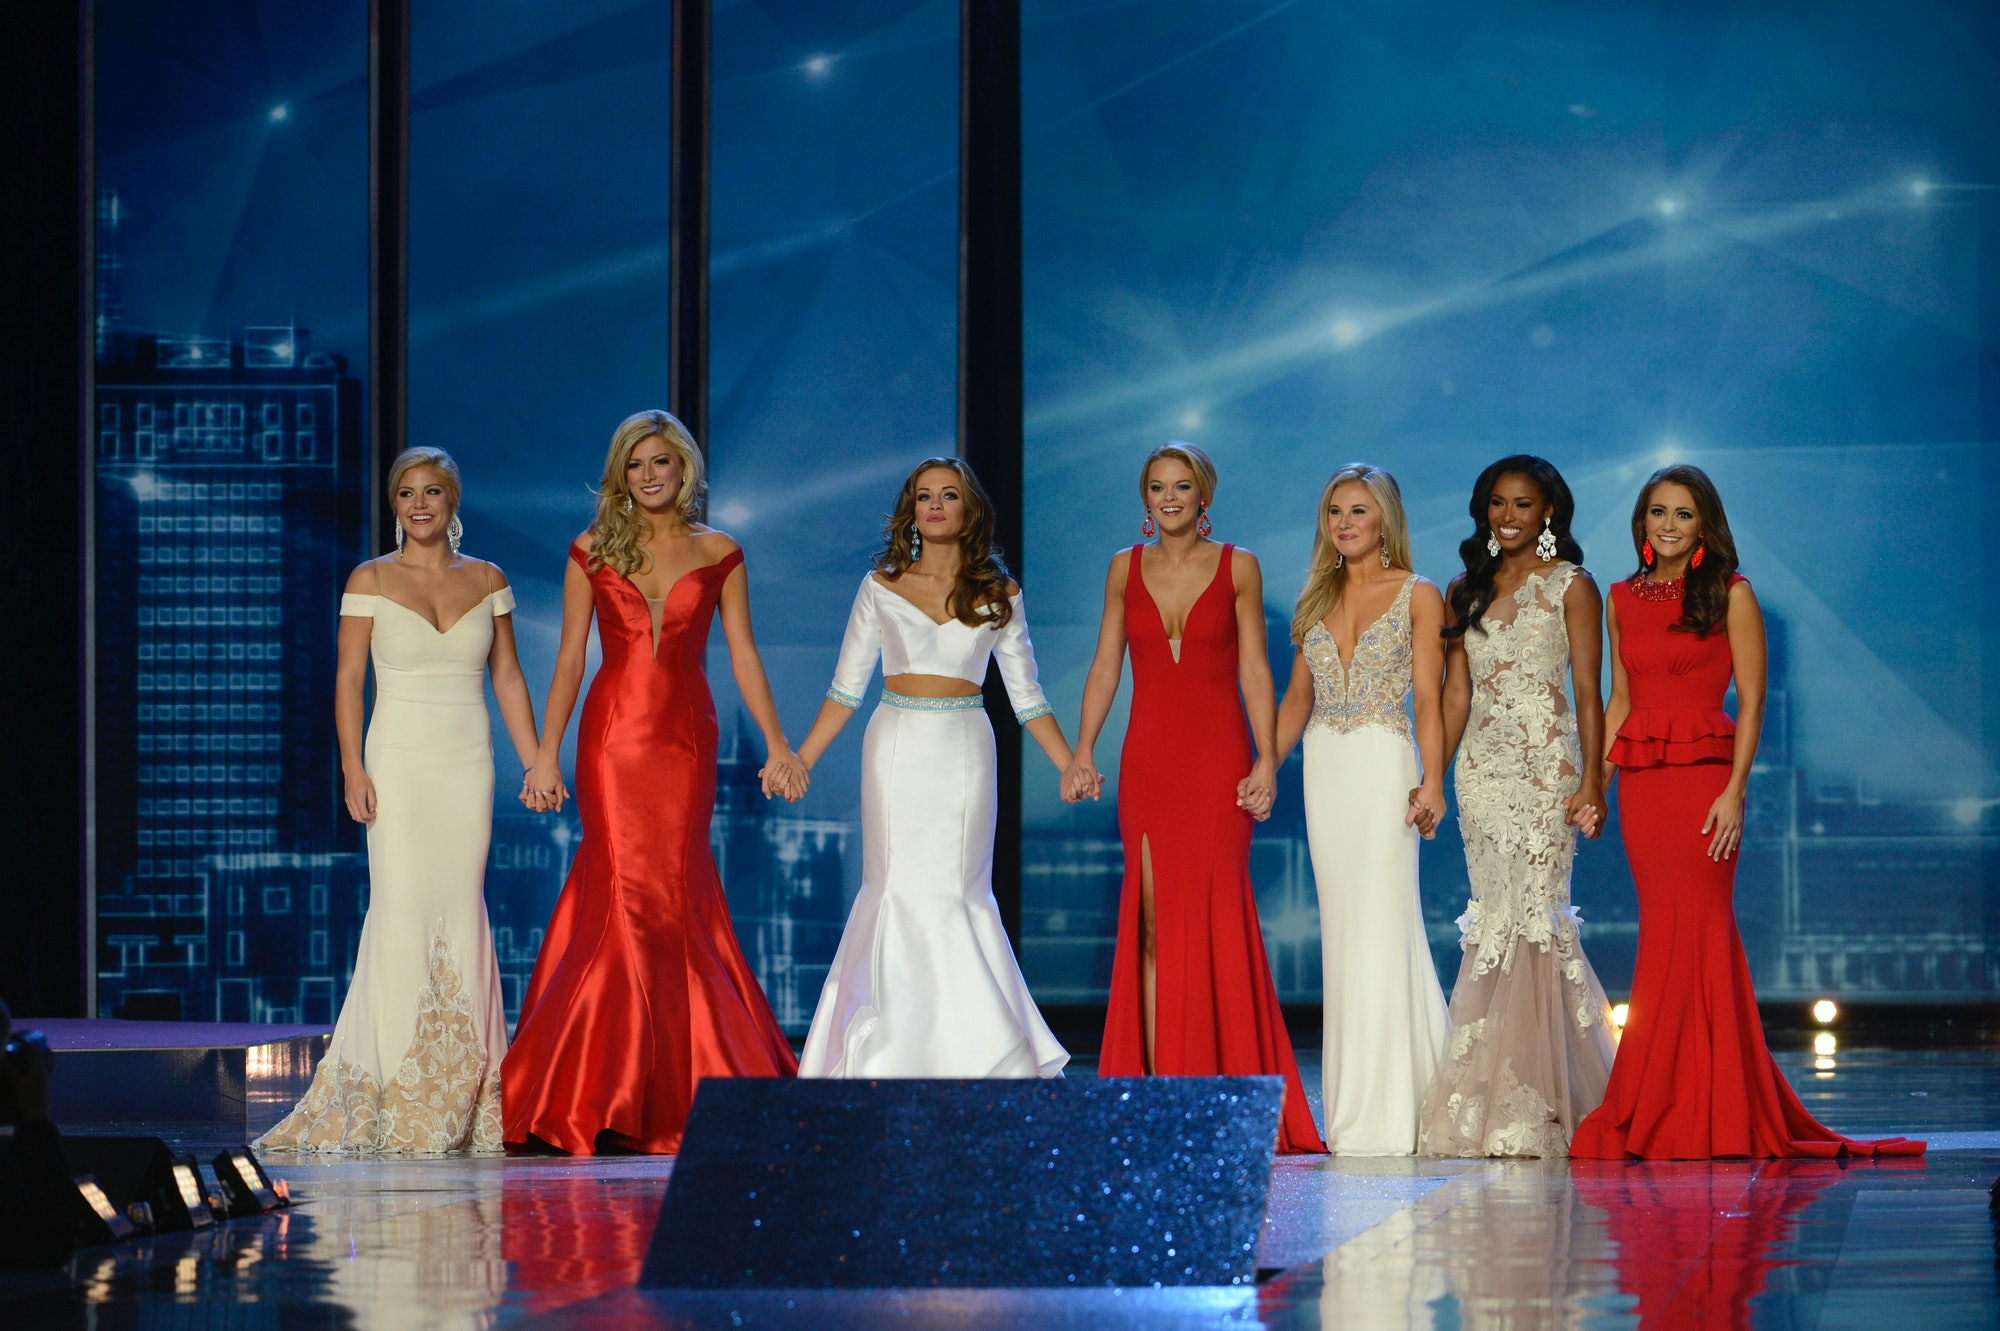 MISS AMERICA 2016 - The 95th Annual Miss America Pageant broadcasts live from Atlantic City's Boardwalk Hall on SUNDAY, SEPT. 13 (9-11pm, ET) airing on the ABC Television Network. (ABC/Ida Mae Astute) MISS AMERICA FINALISTS